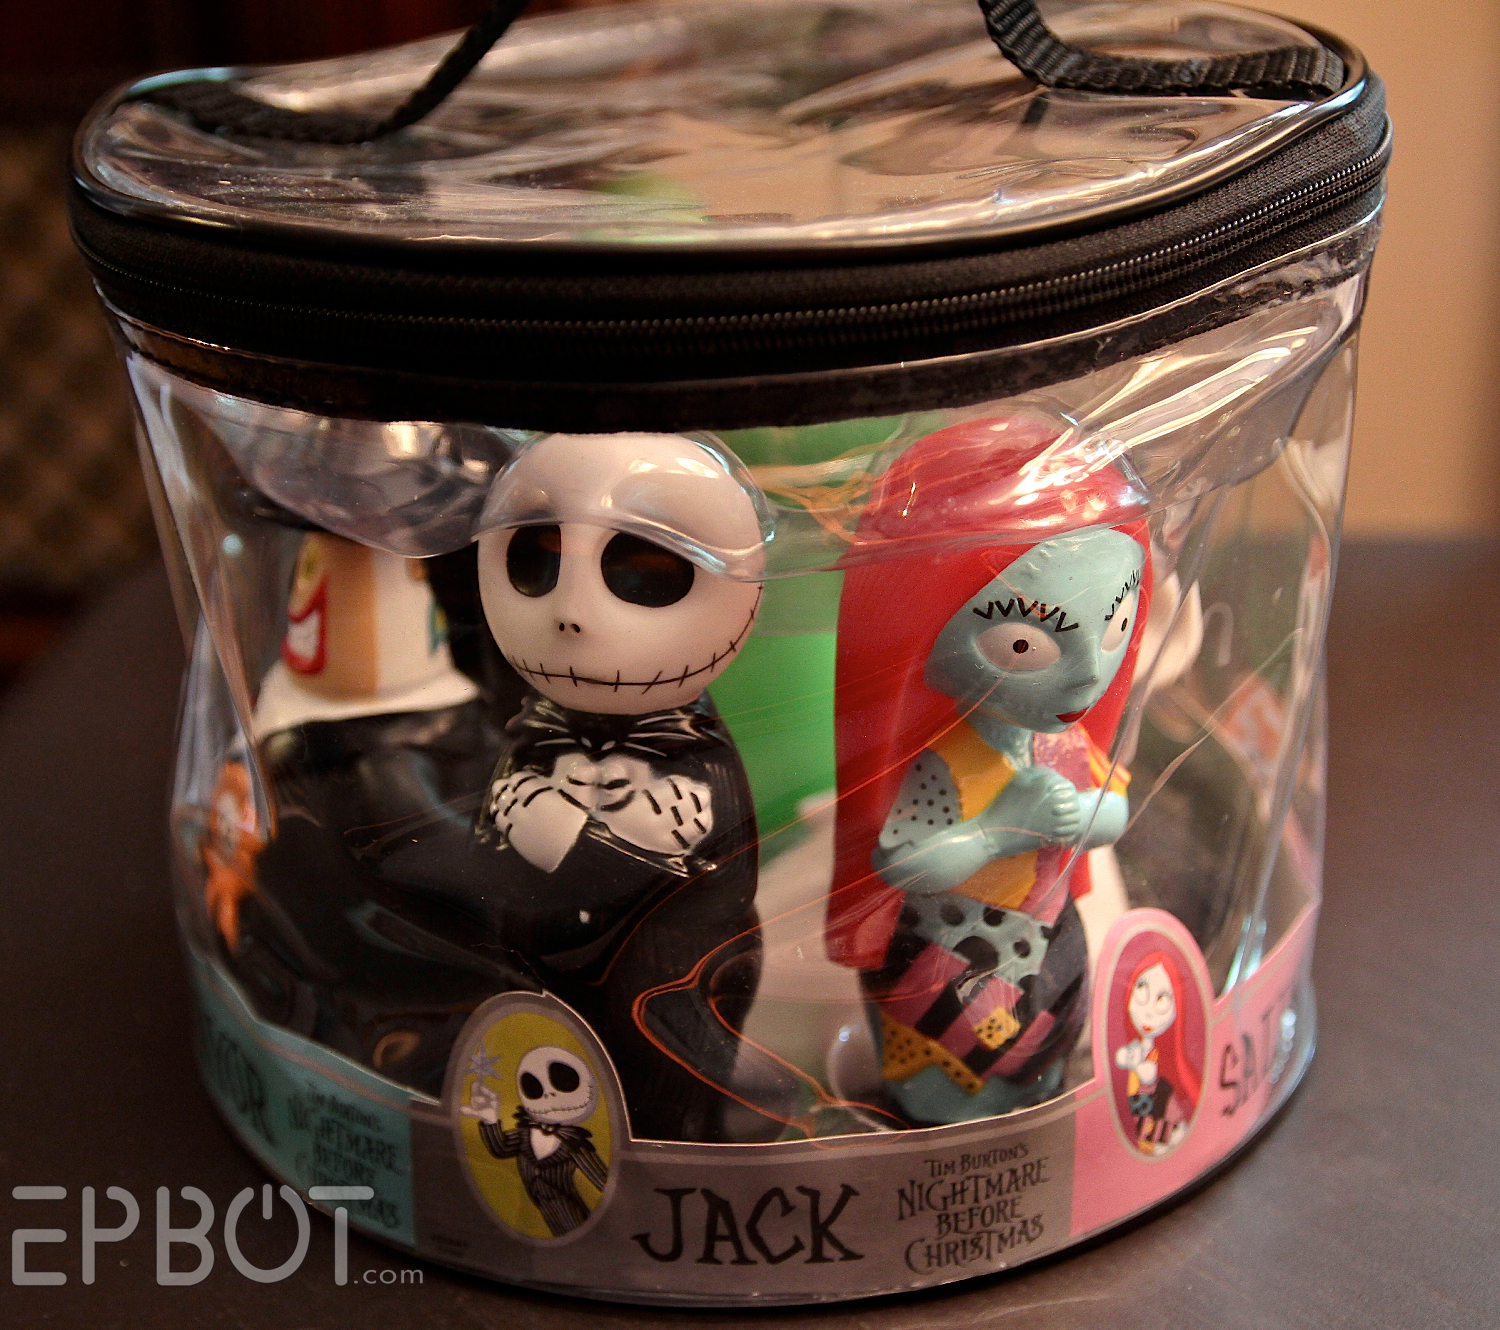 Epbot whats this nightmare before christmas figurines nightmare before christmas figurines solutioingenieria Gallery